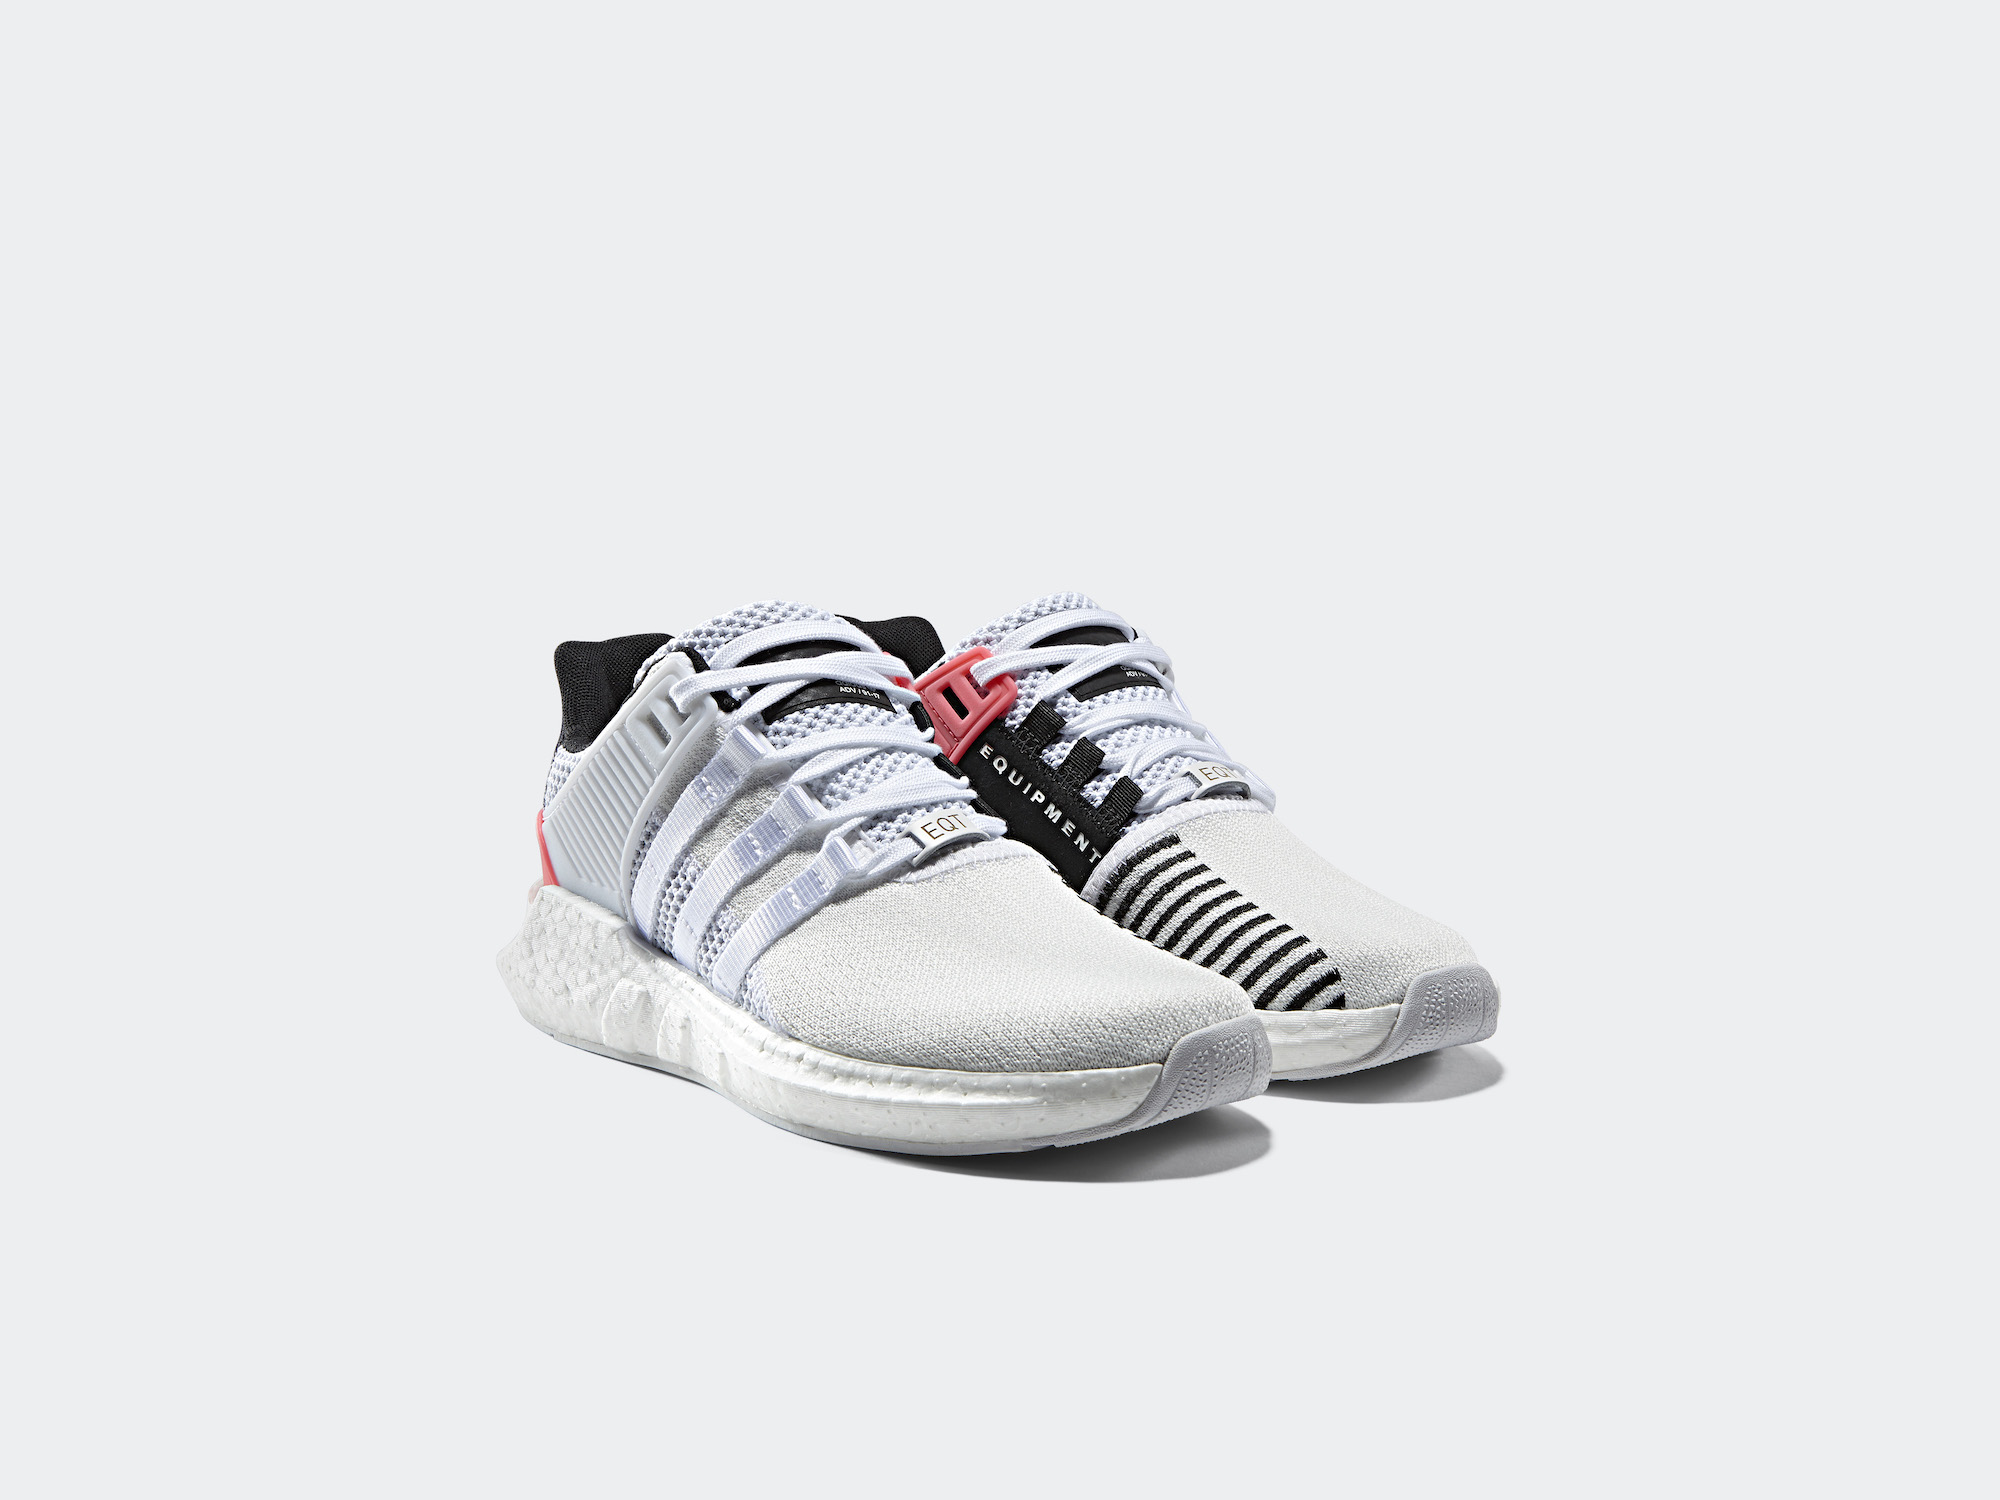 adidas Originals EQT Support ADV Berlin everysize Blog